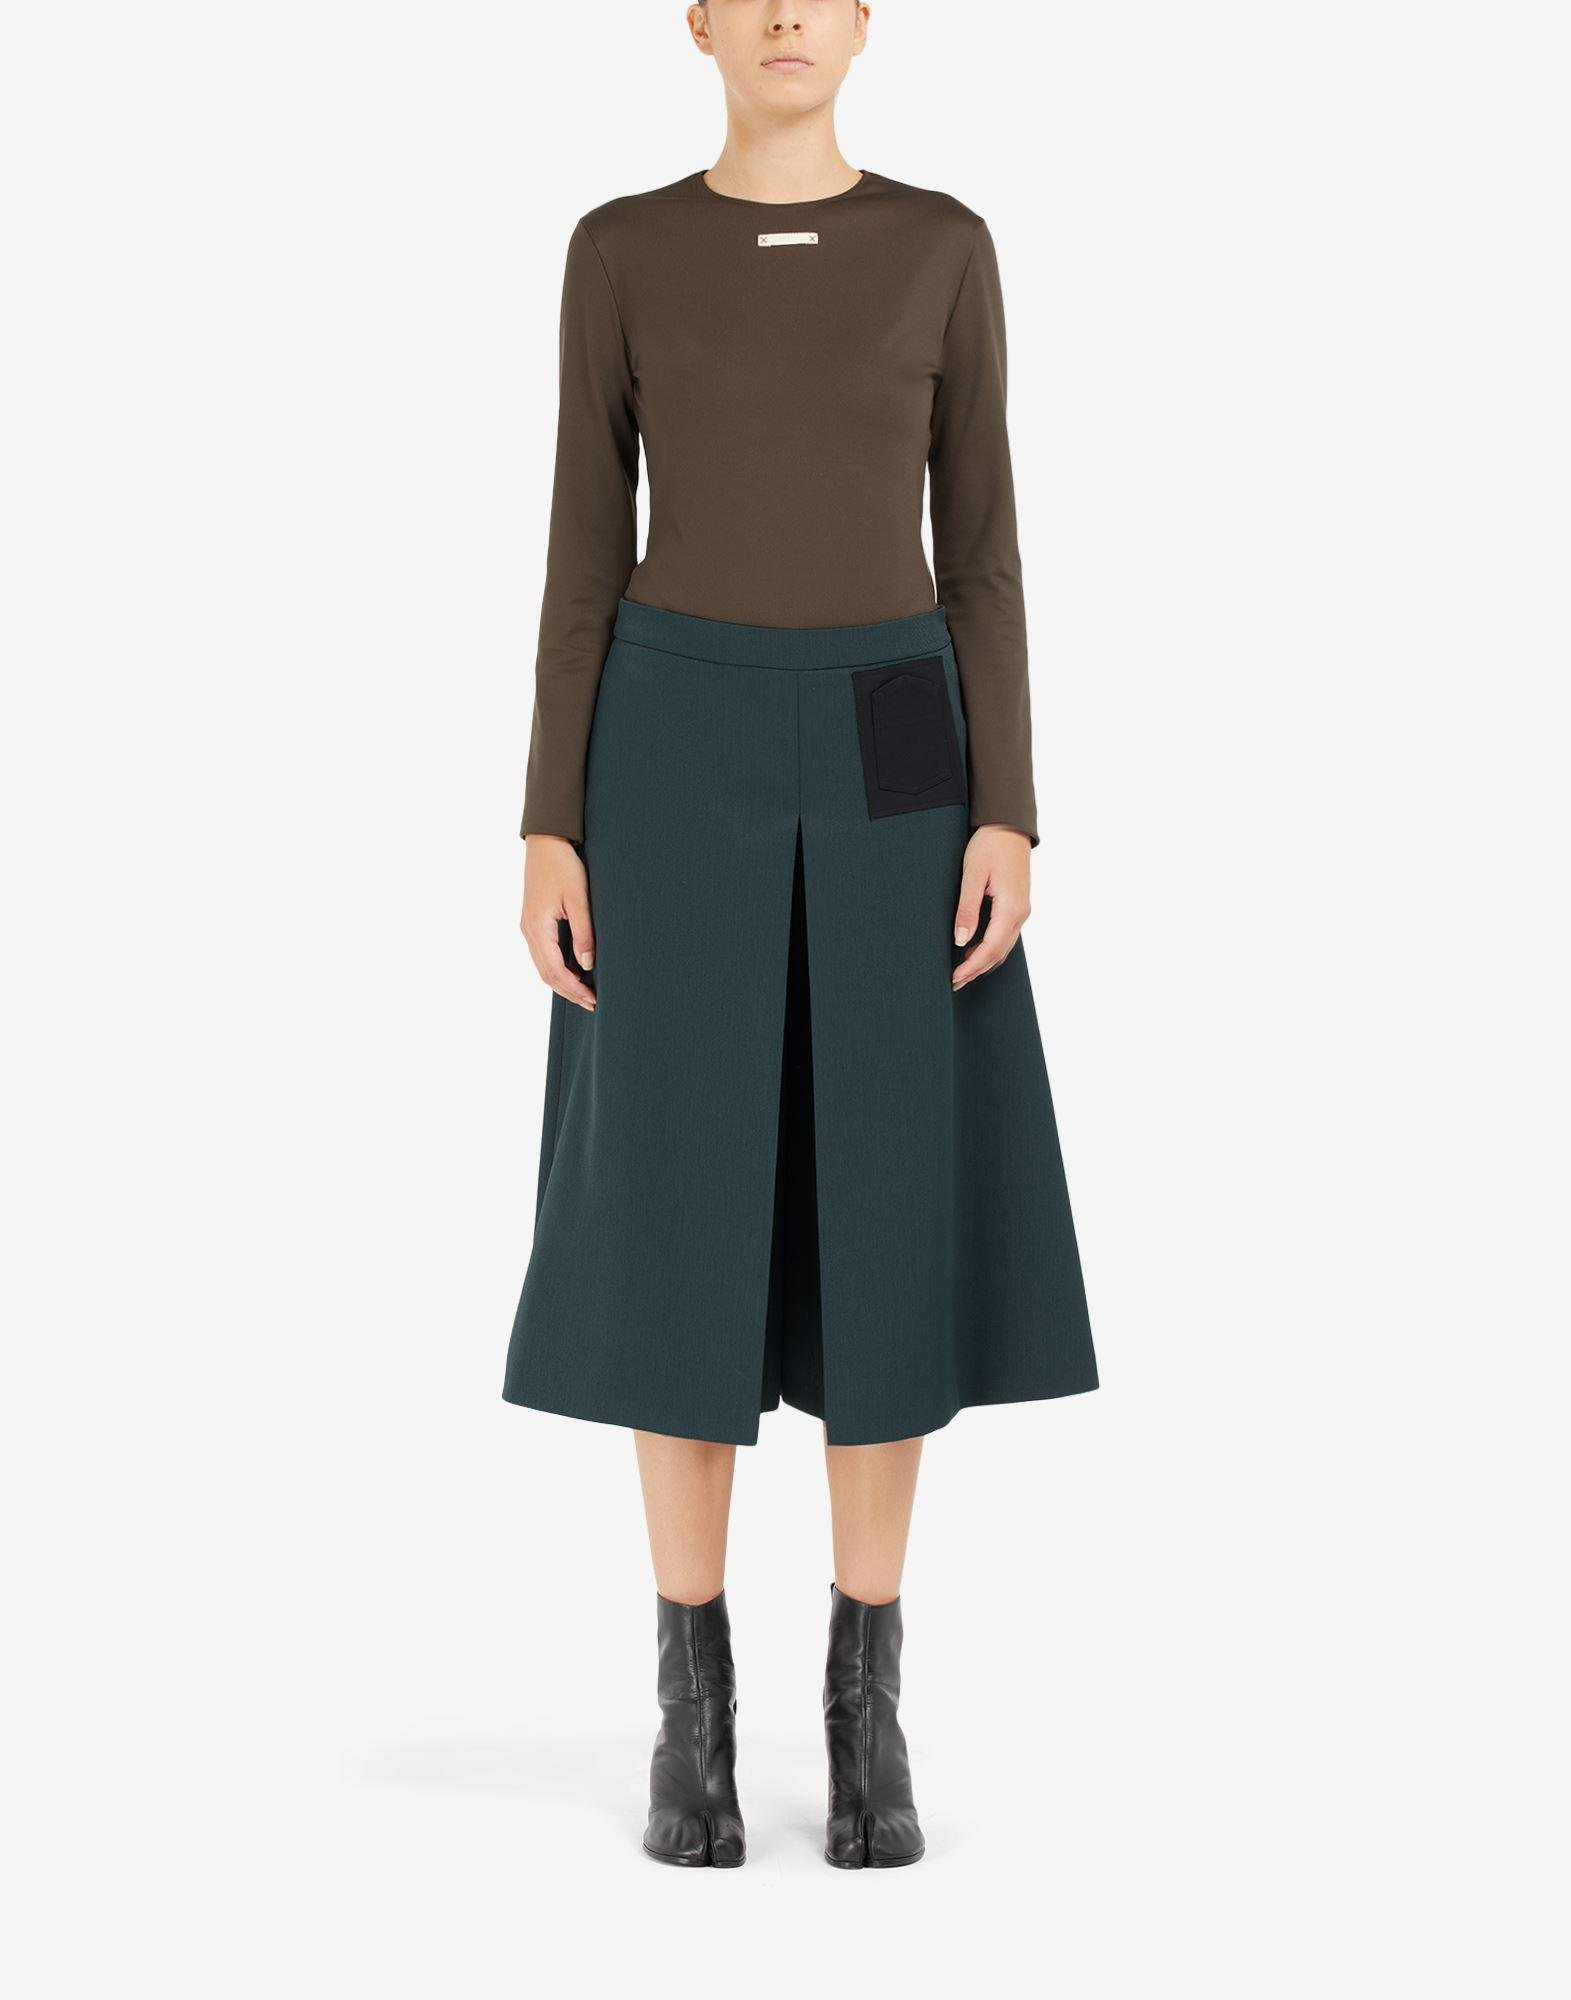 'Memory of' culottes